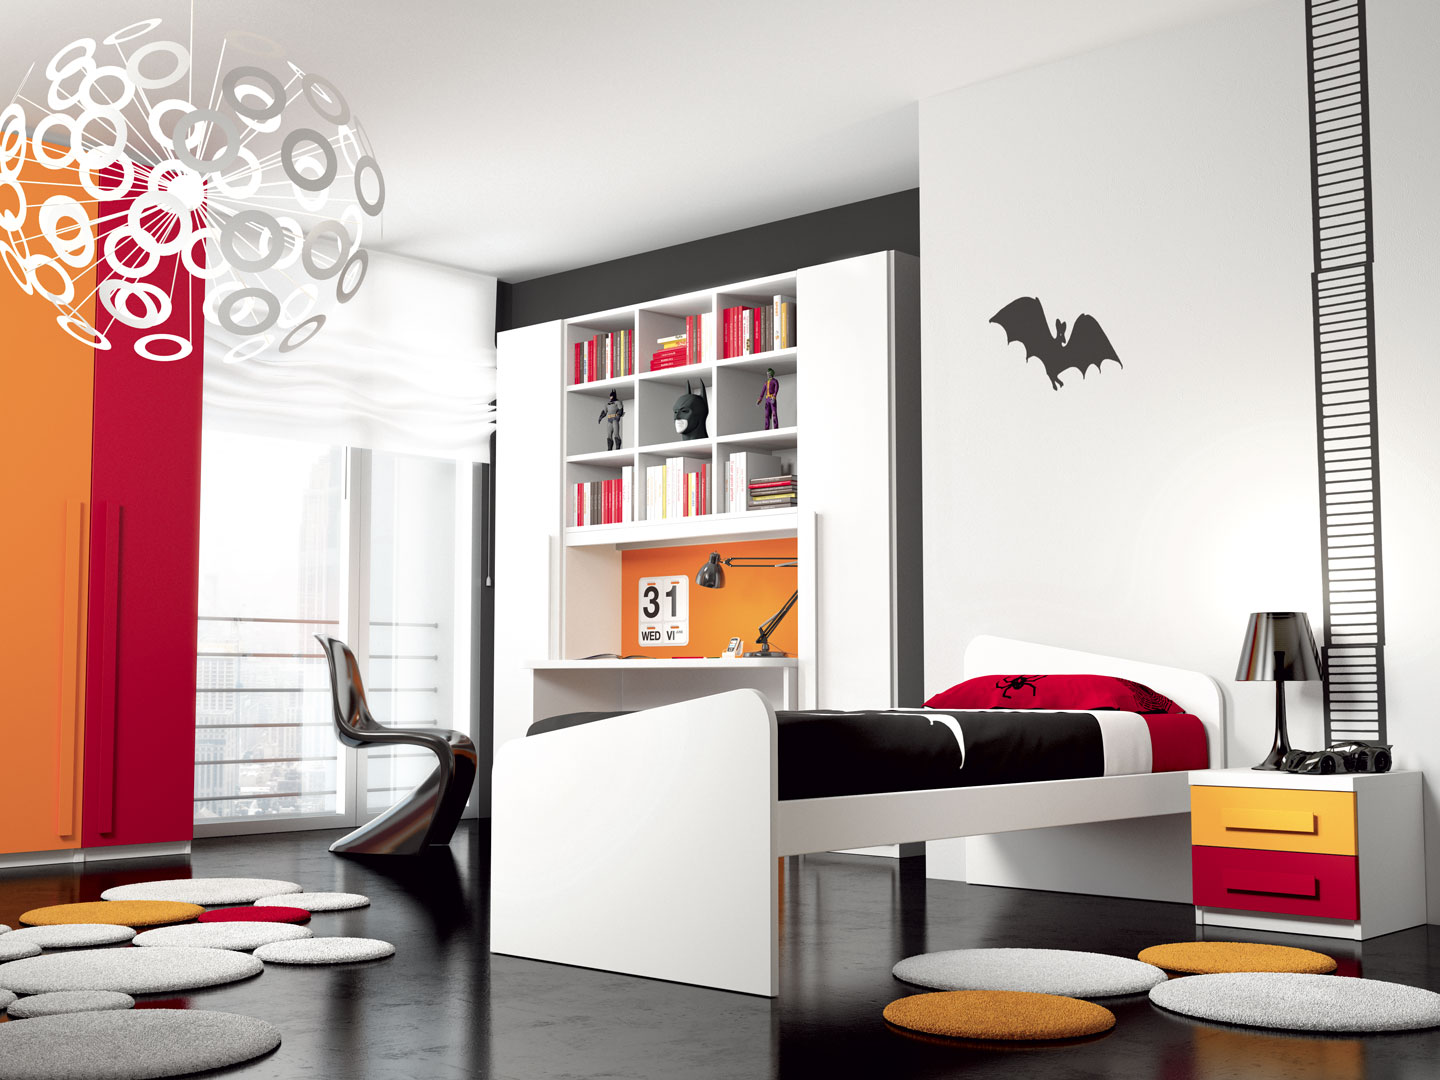 Camerette made in italy ima mobili composizione 10 newformsdesign camerette newformsdesign - Mobili made in italy ...